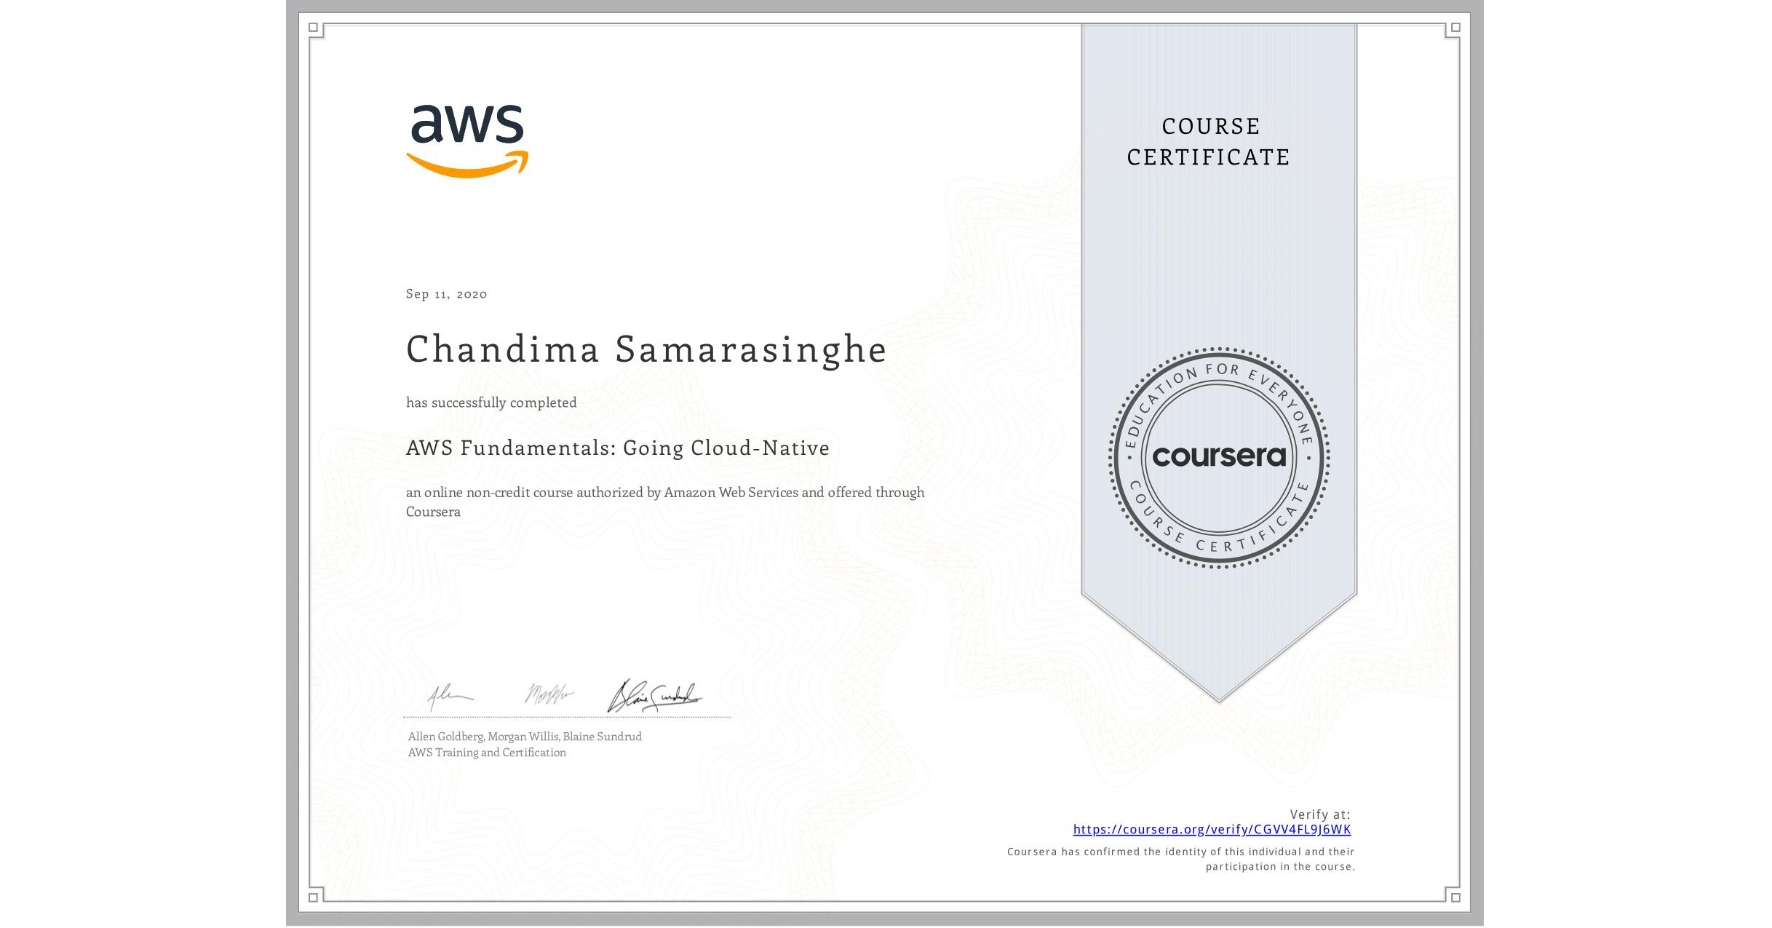 View certificate for Chandima Samarasinghe, AWS Fundamentals: Going Cloud-Native, an online non-credit course authorized by Amazon Web Services and offered through Coursera